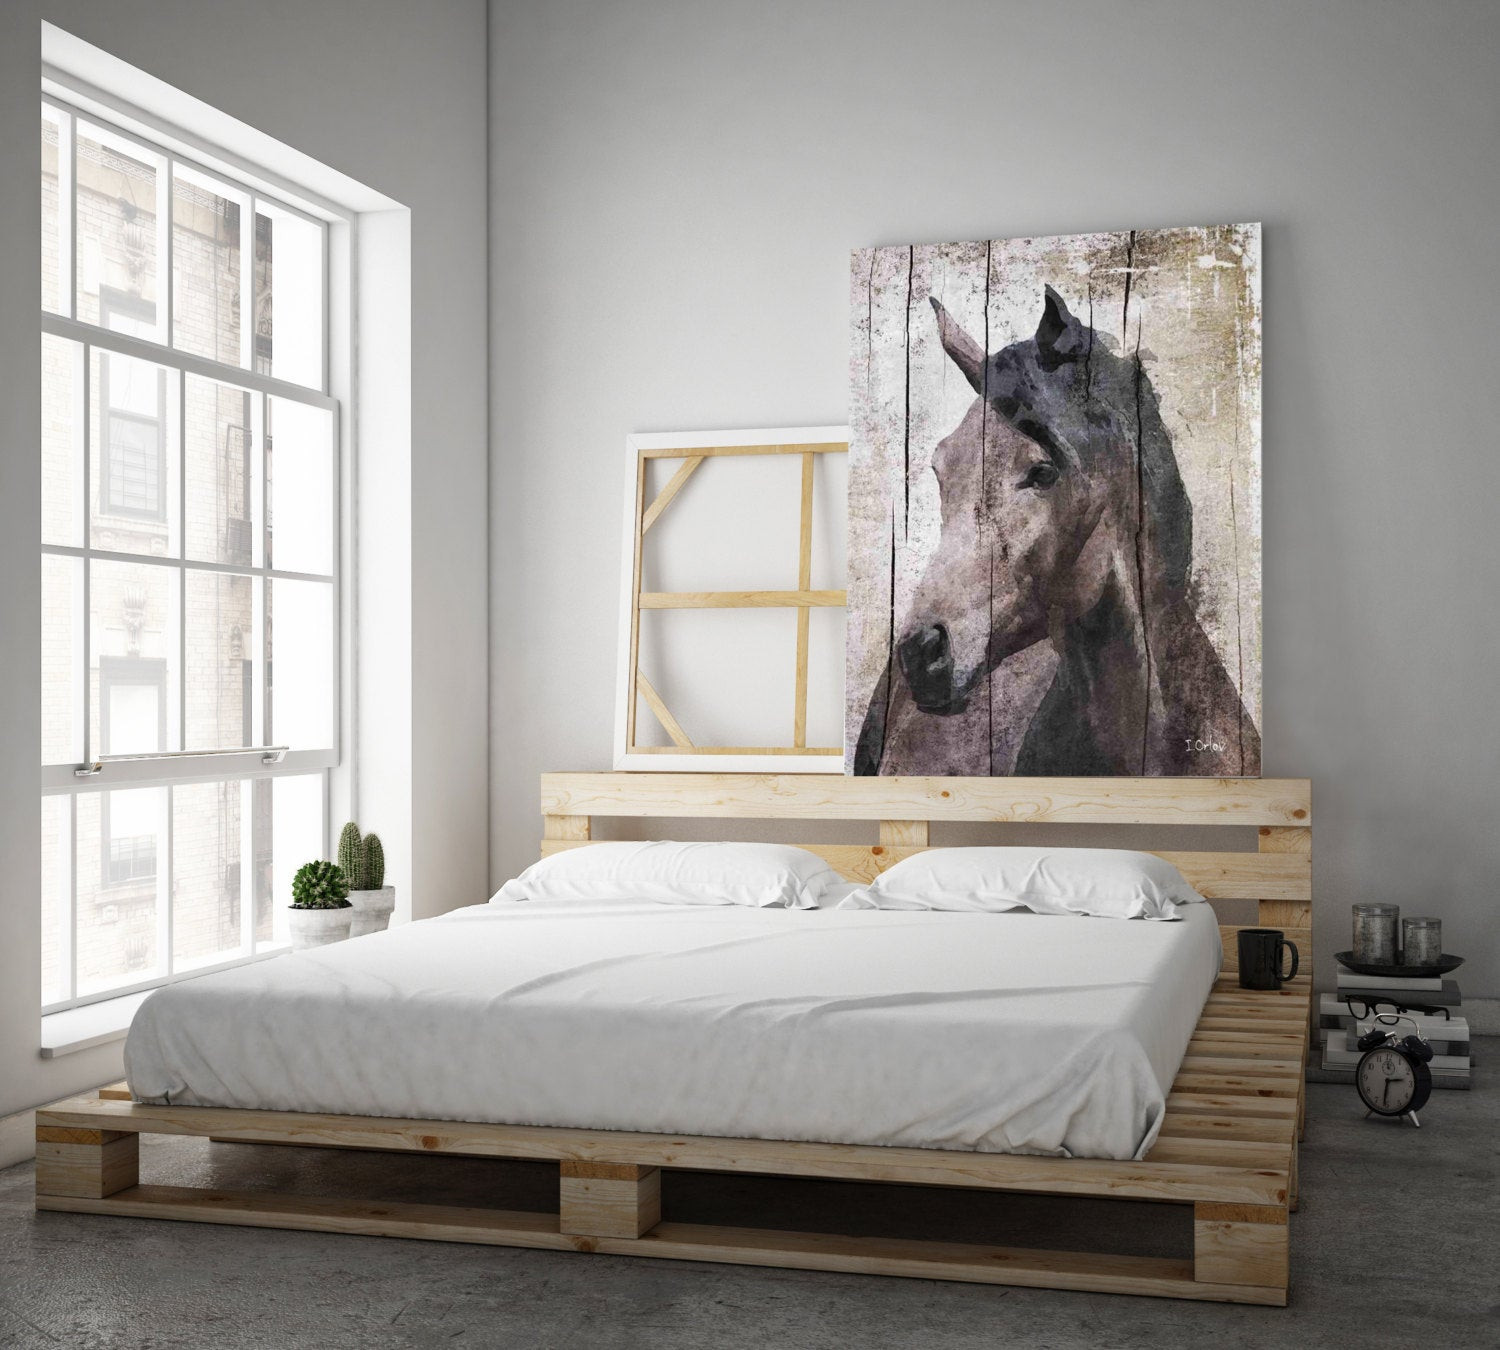 Best ideas about Horse Wall Art . Save or Pin Horse LeMuse Extra Horse Unique Horse Wall Decor Now.